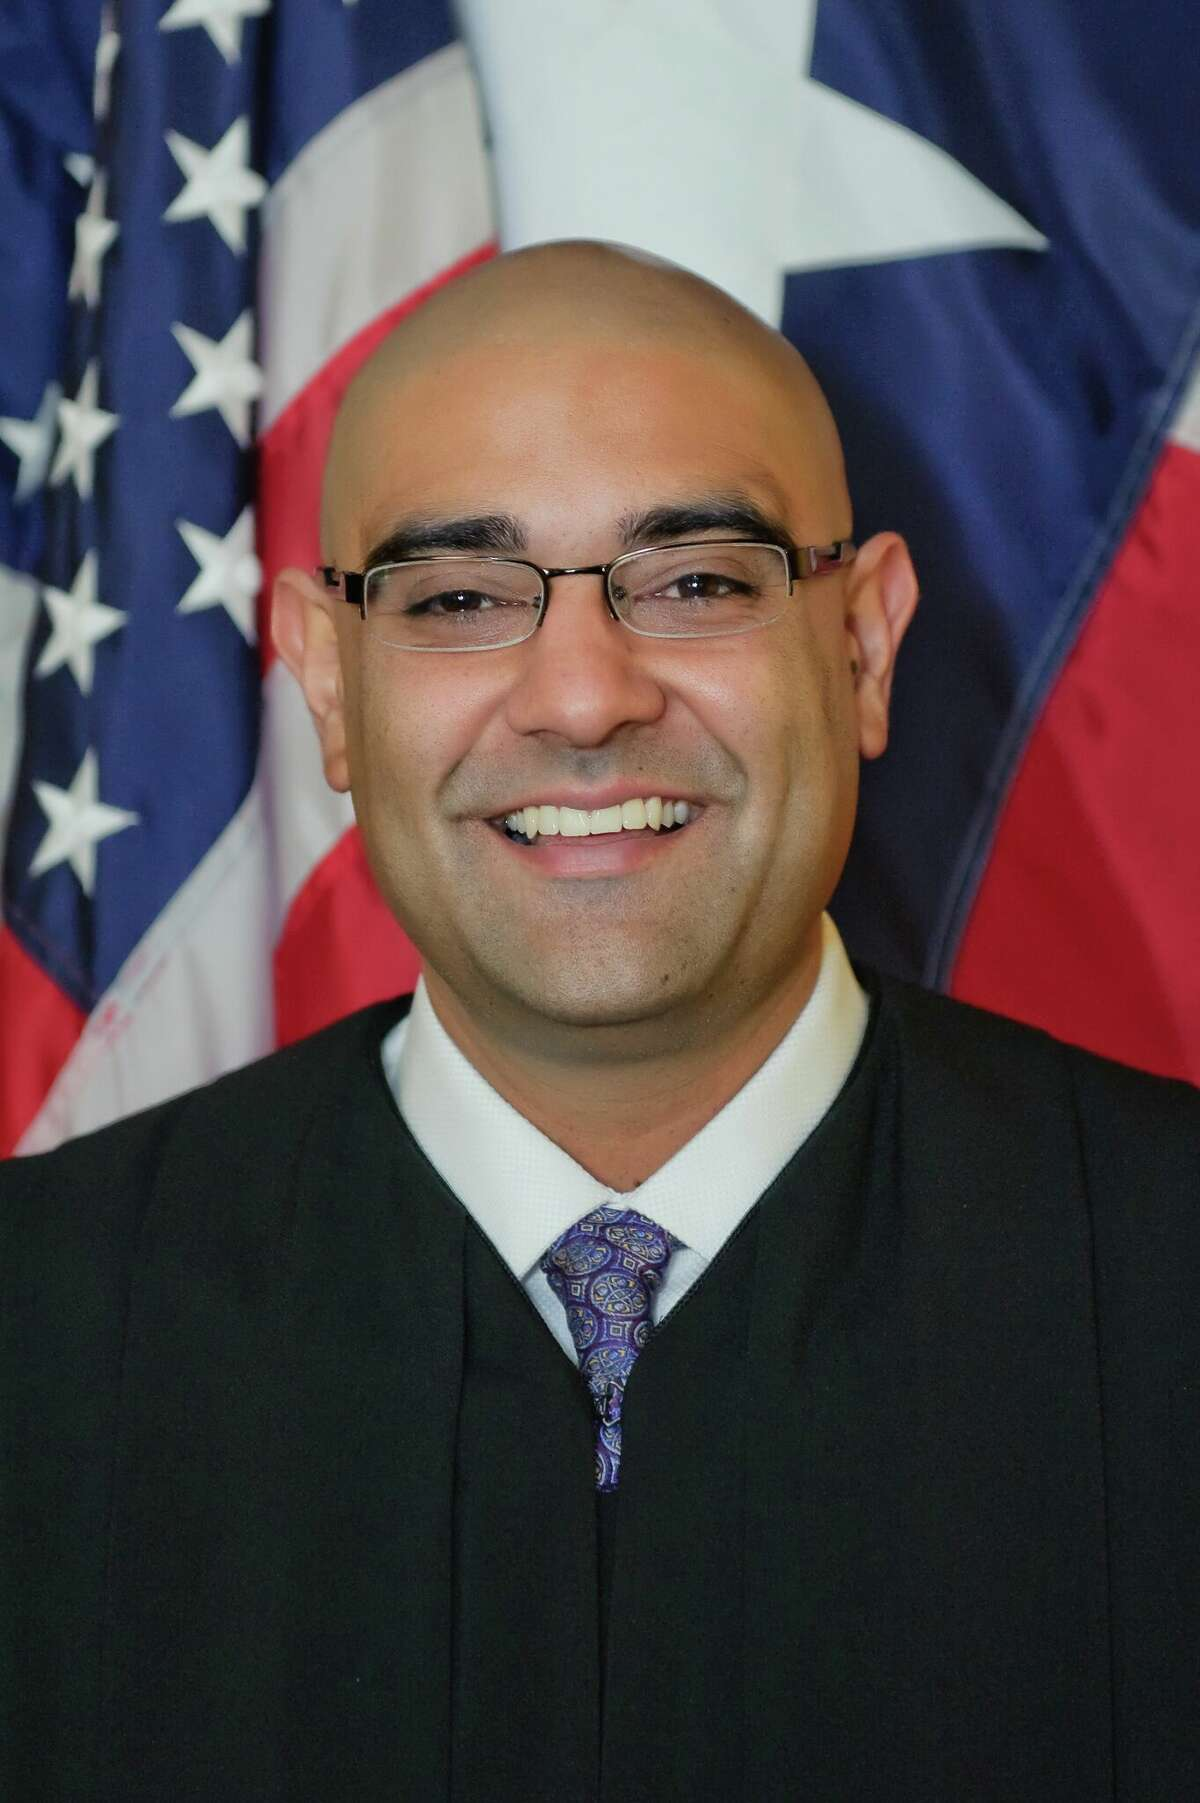 R.K. Sandill, (D), candidate for Supreme Court, Place 4.